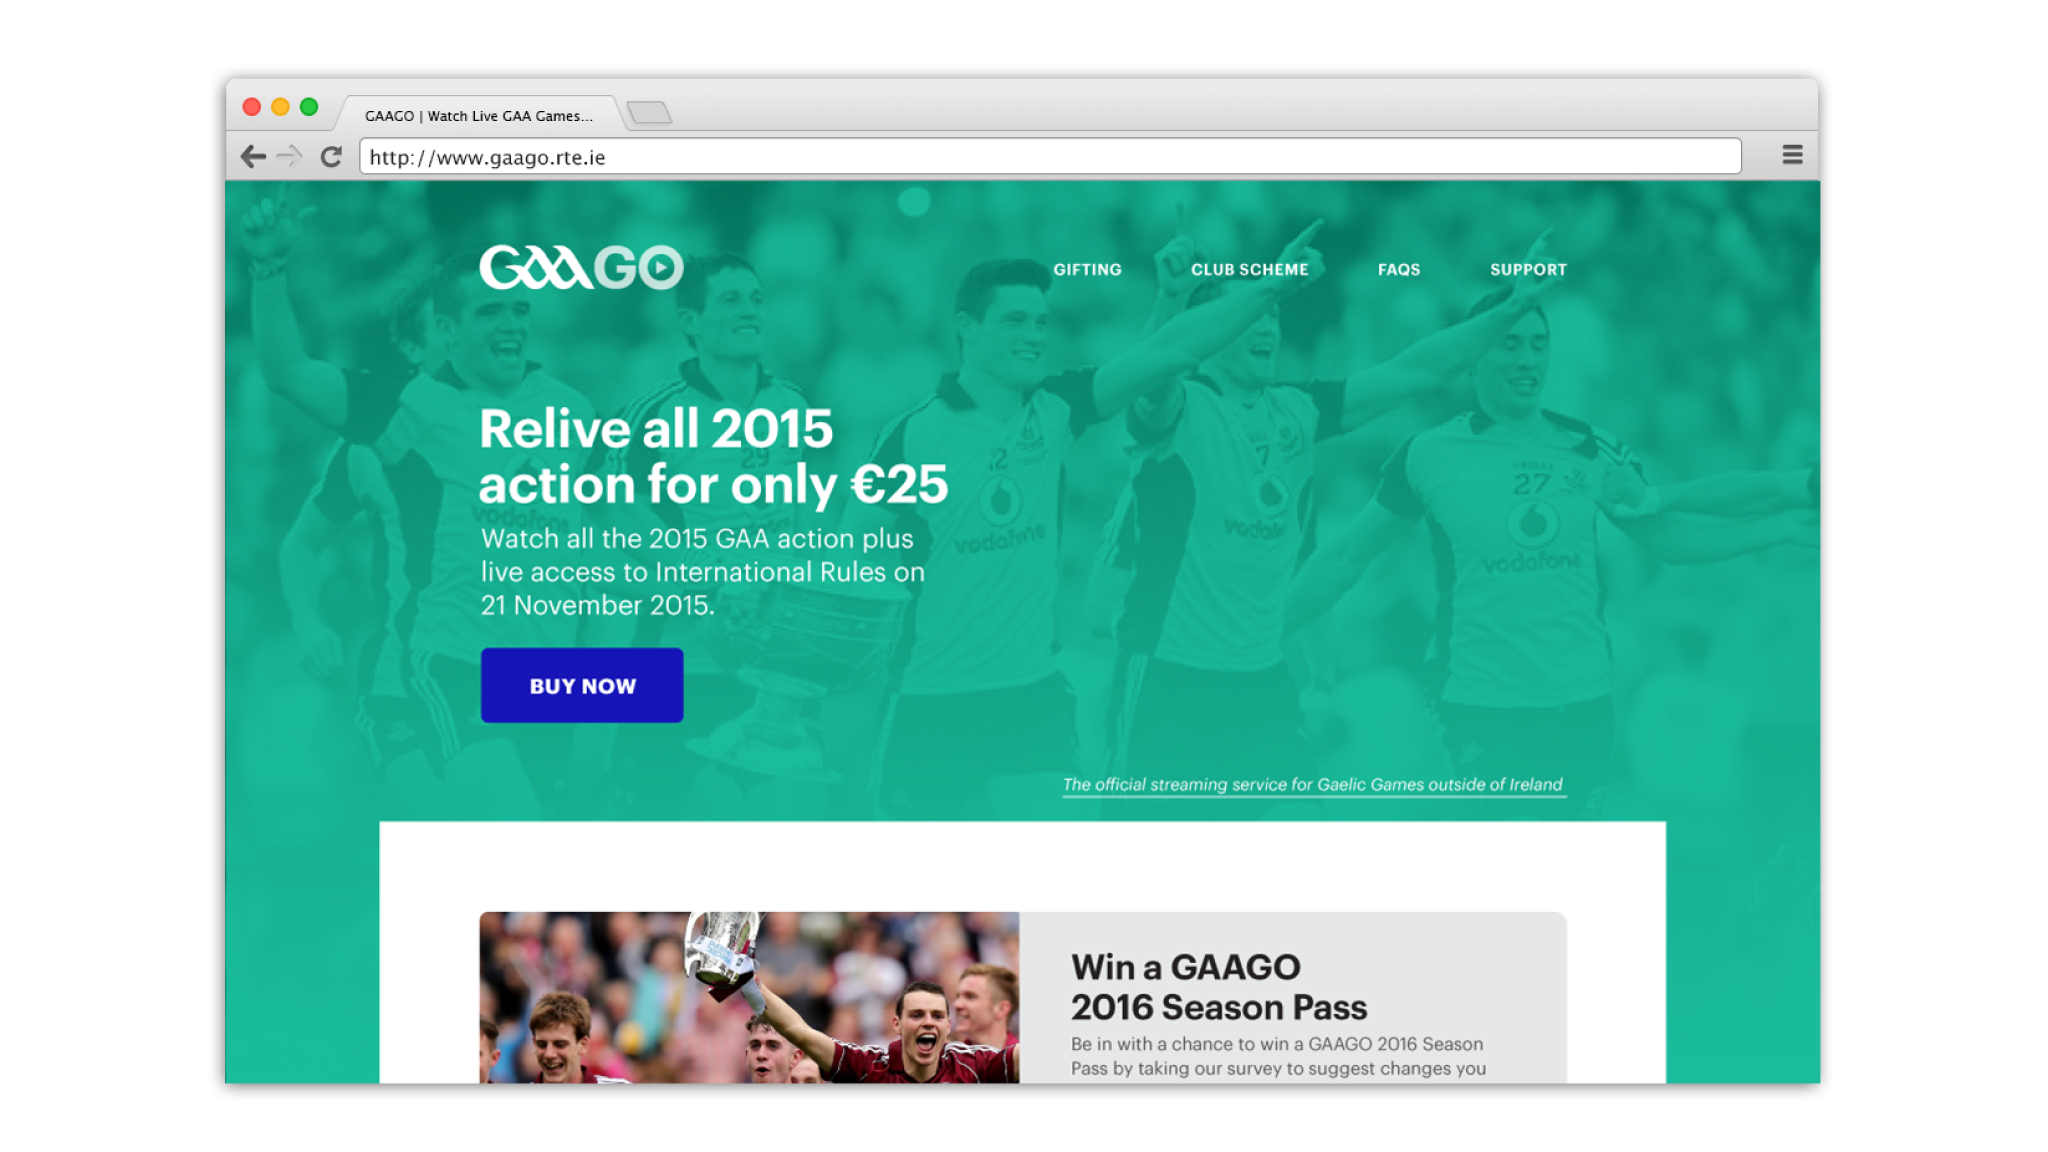 Cover image: GAAGO (2015)